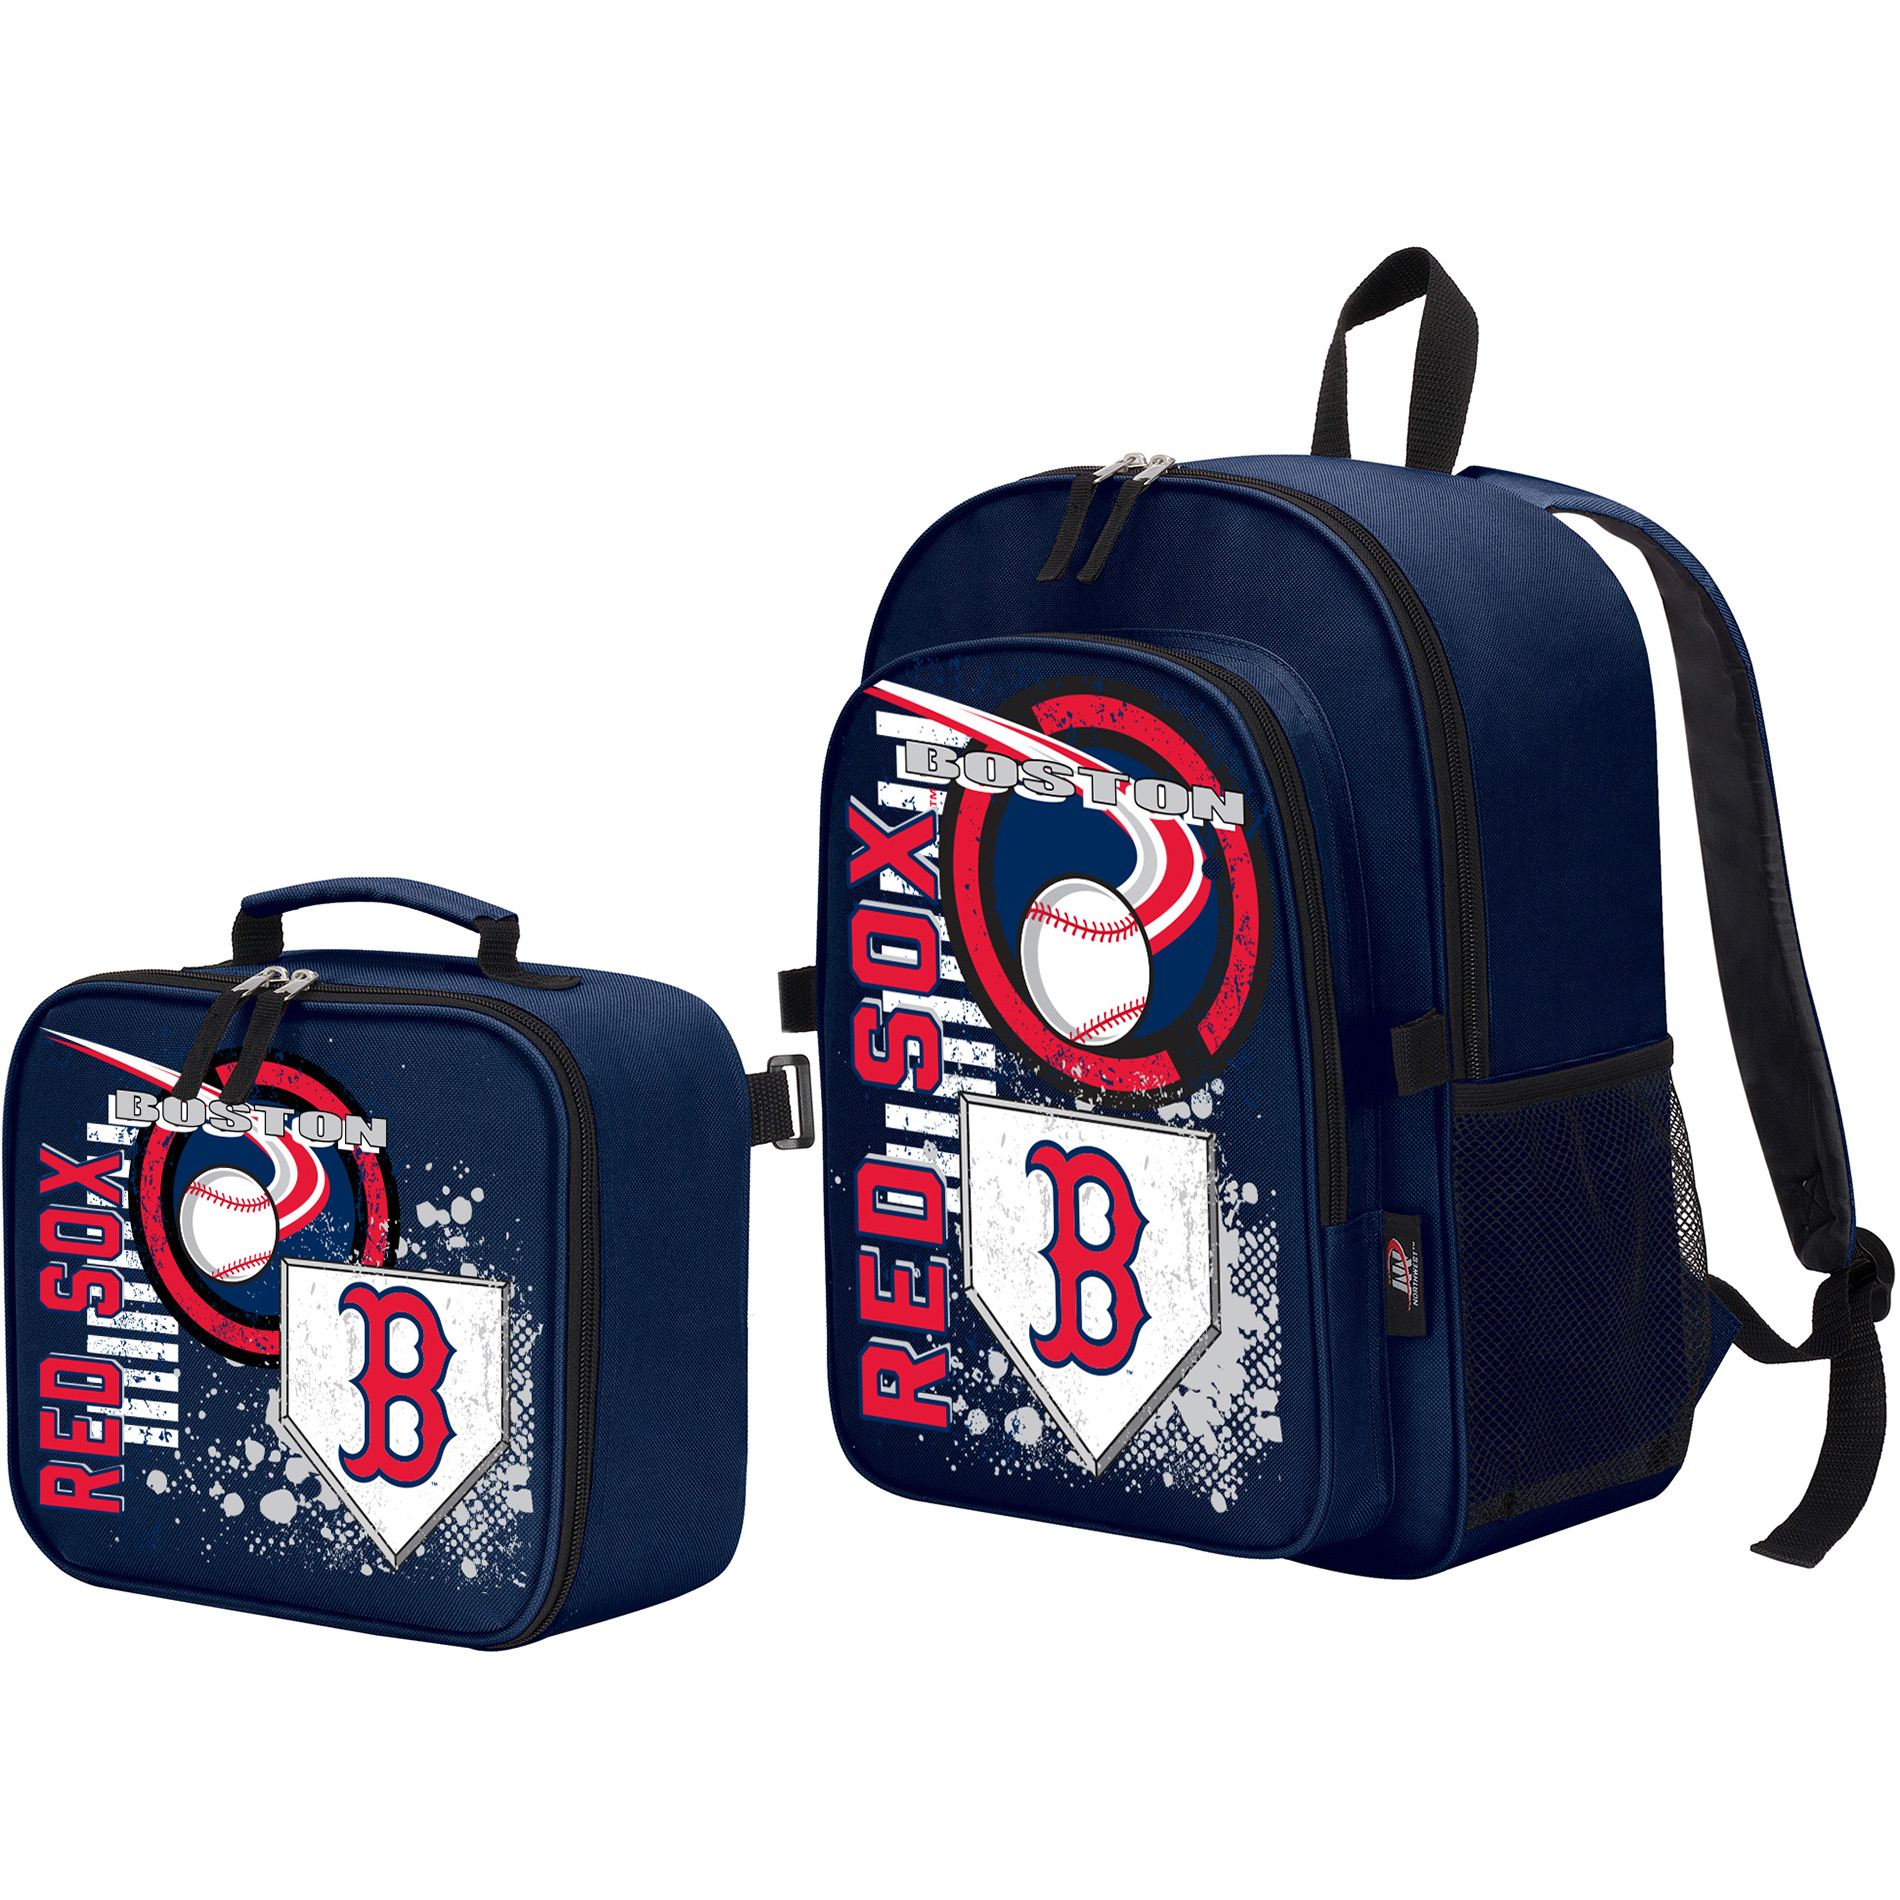 The Northwest Company Boston Red Sox Accelerator Backpack & Lunchbox - No Size